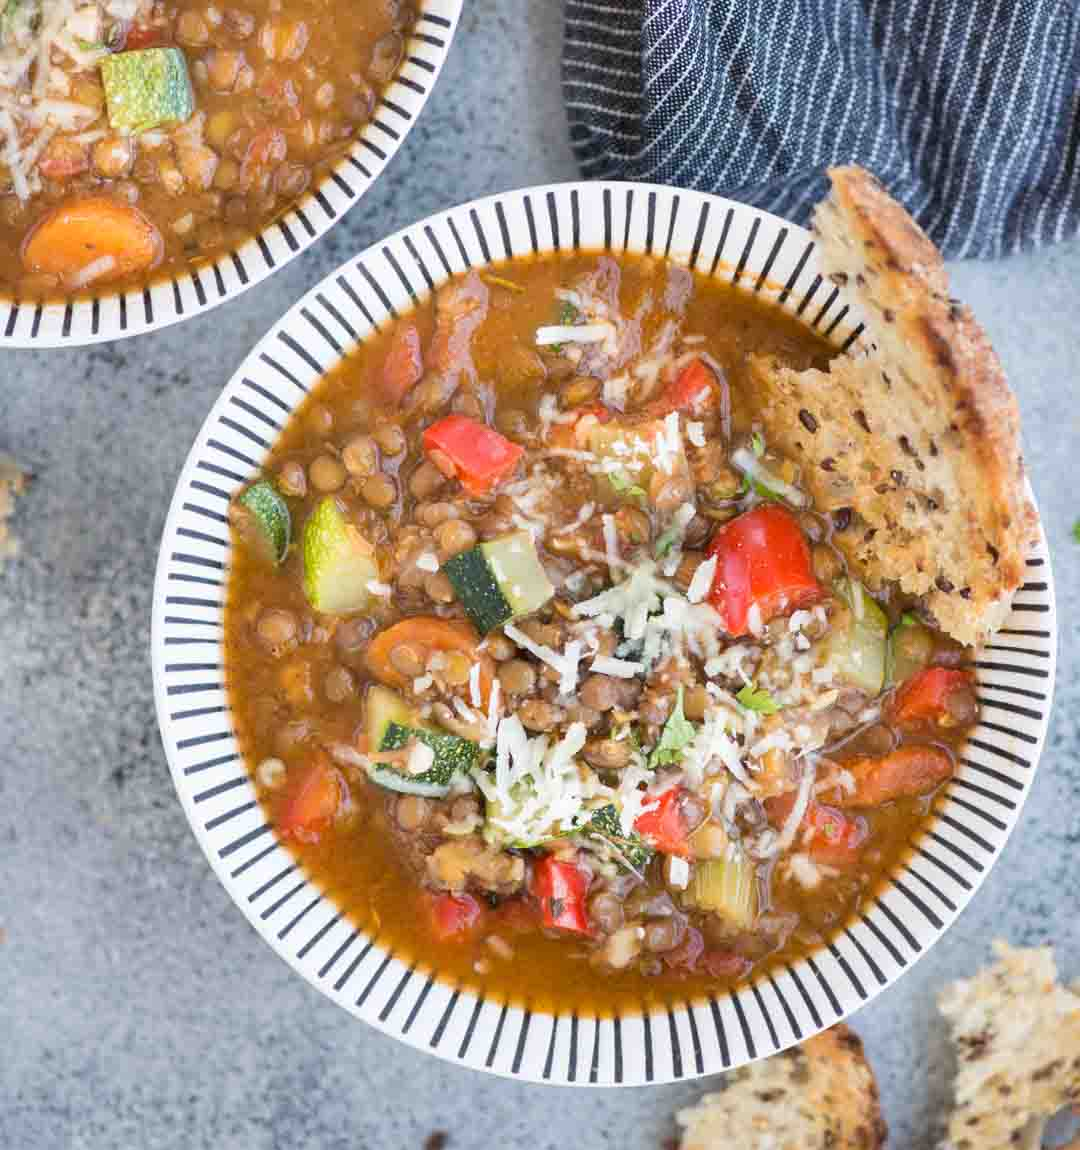 Vegetable Lentil Soup with array load of vegetables is a filling one-pot vegan meal. Made with Lentils, Zucchini, Carrot, Celery, this soup is loaded with plant-based protein and fiber.